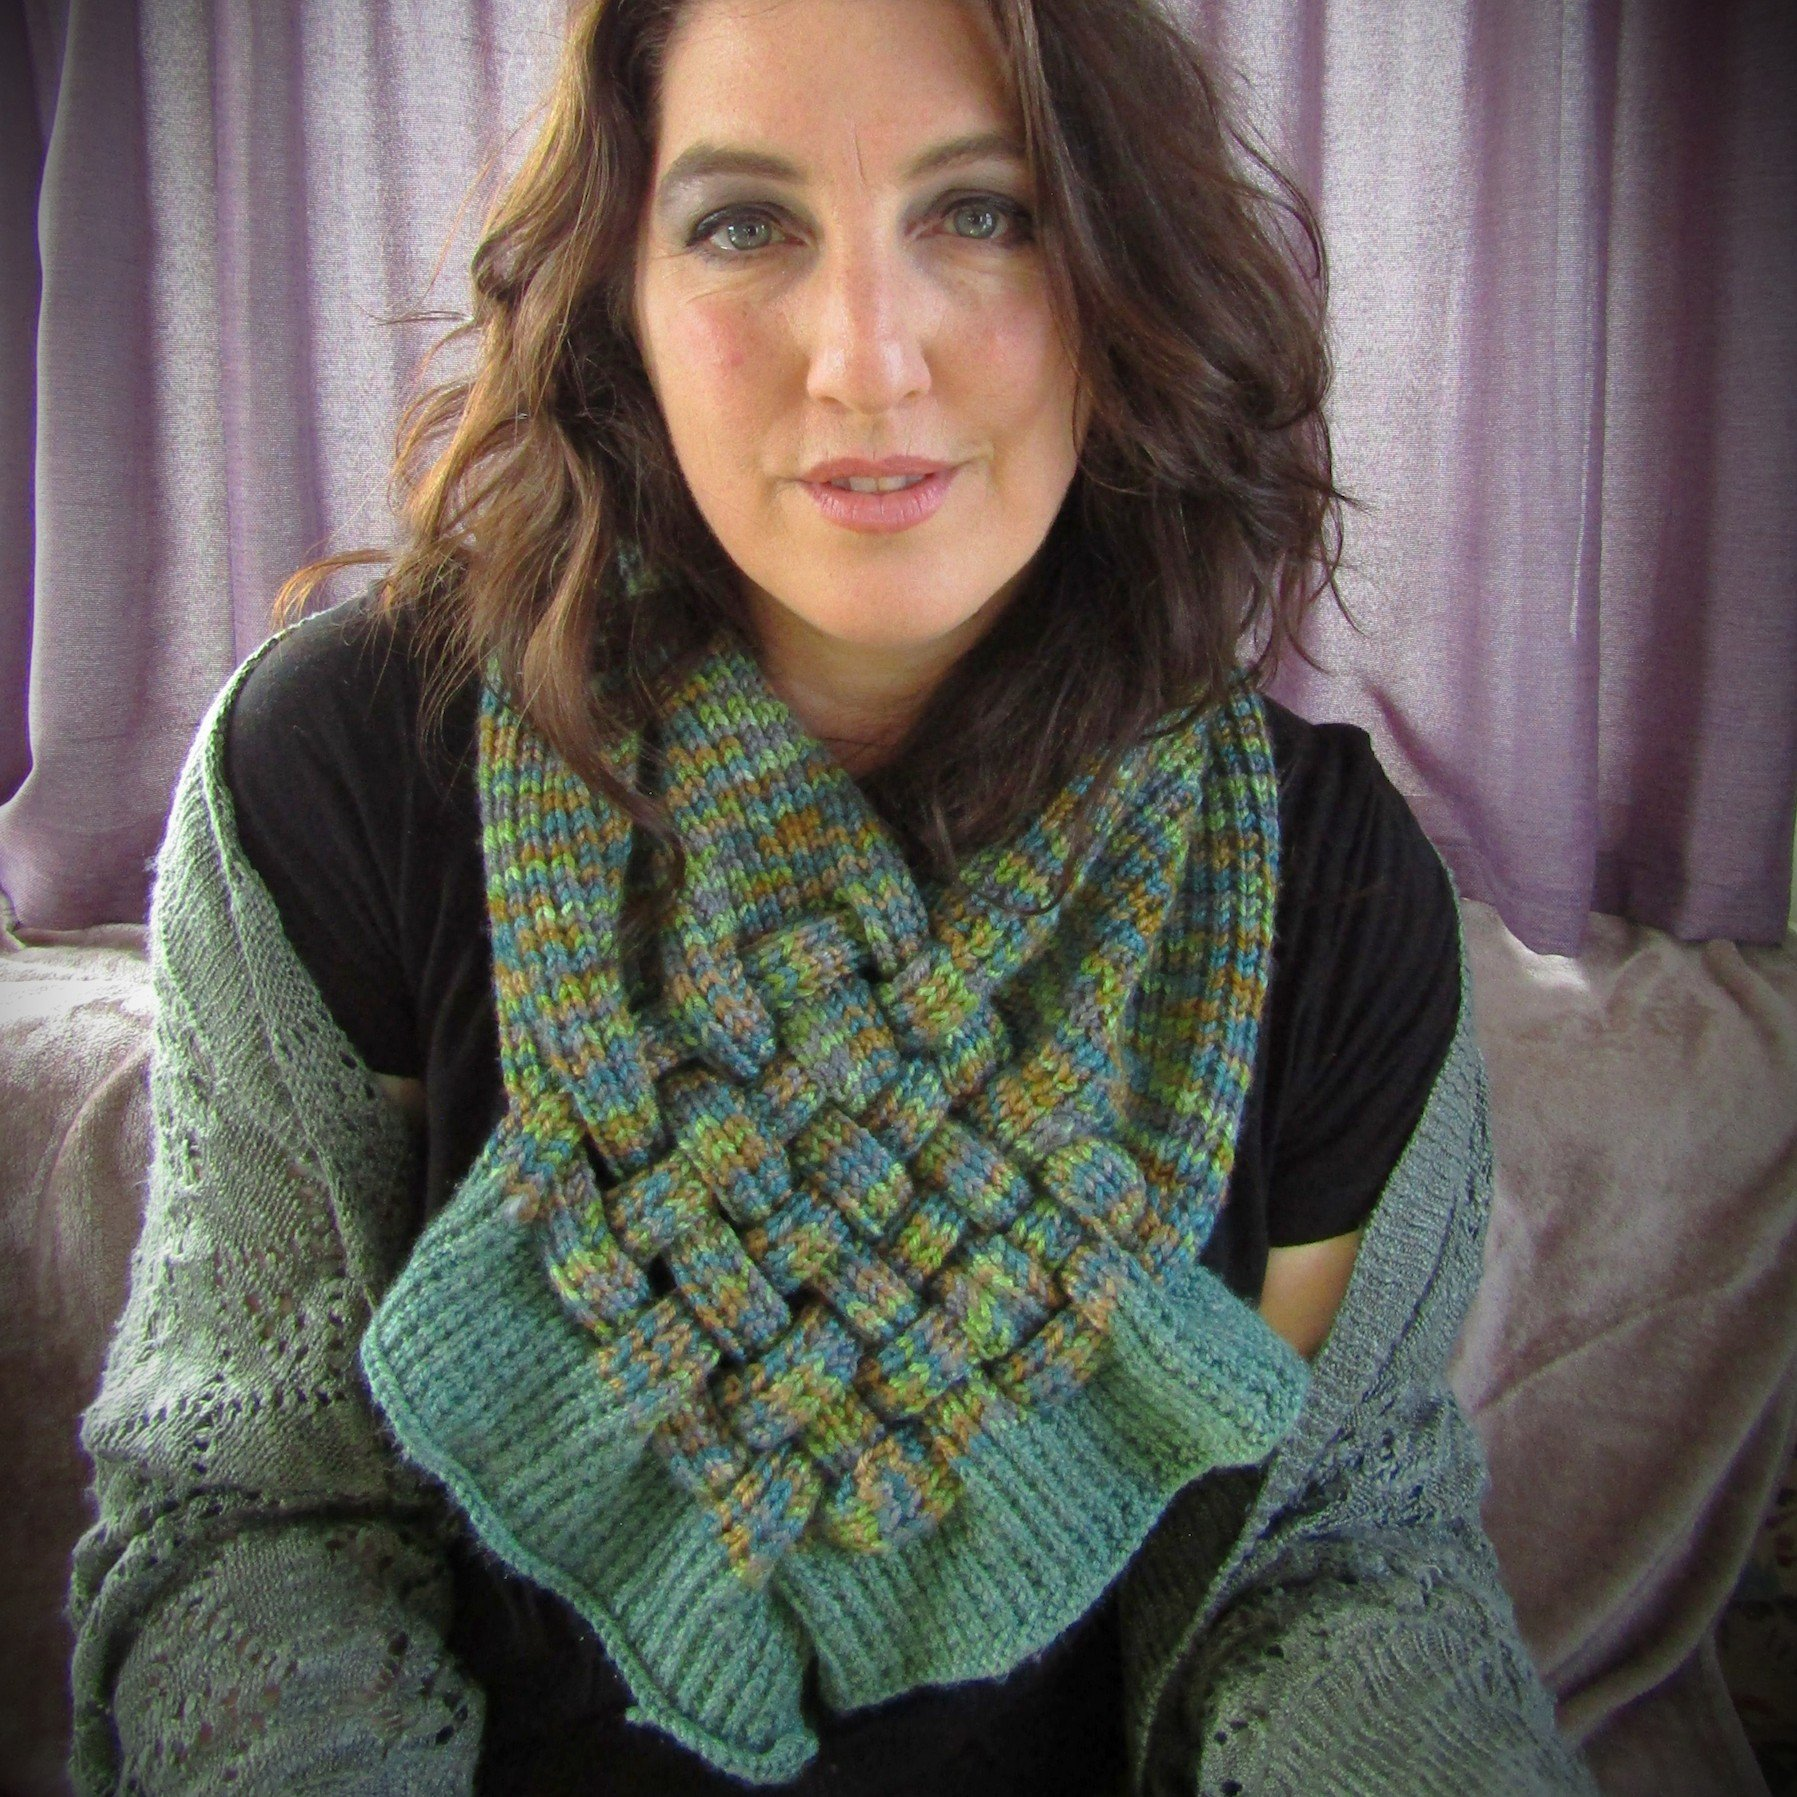 Green Lattice Chest Warmer/Neck Piece by Shoreline food and crafts Co. Mayo - Parade- Handmade